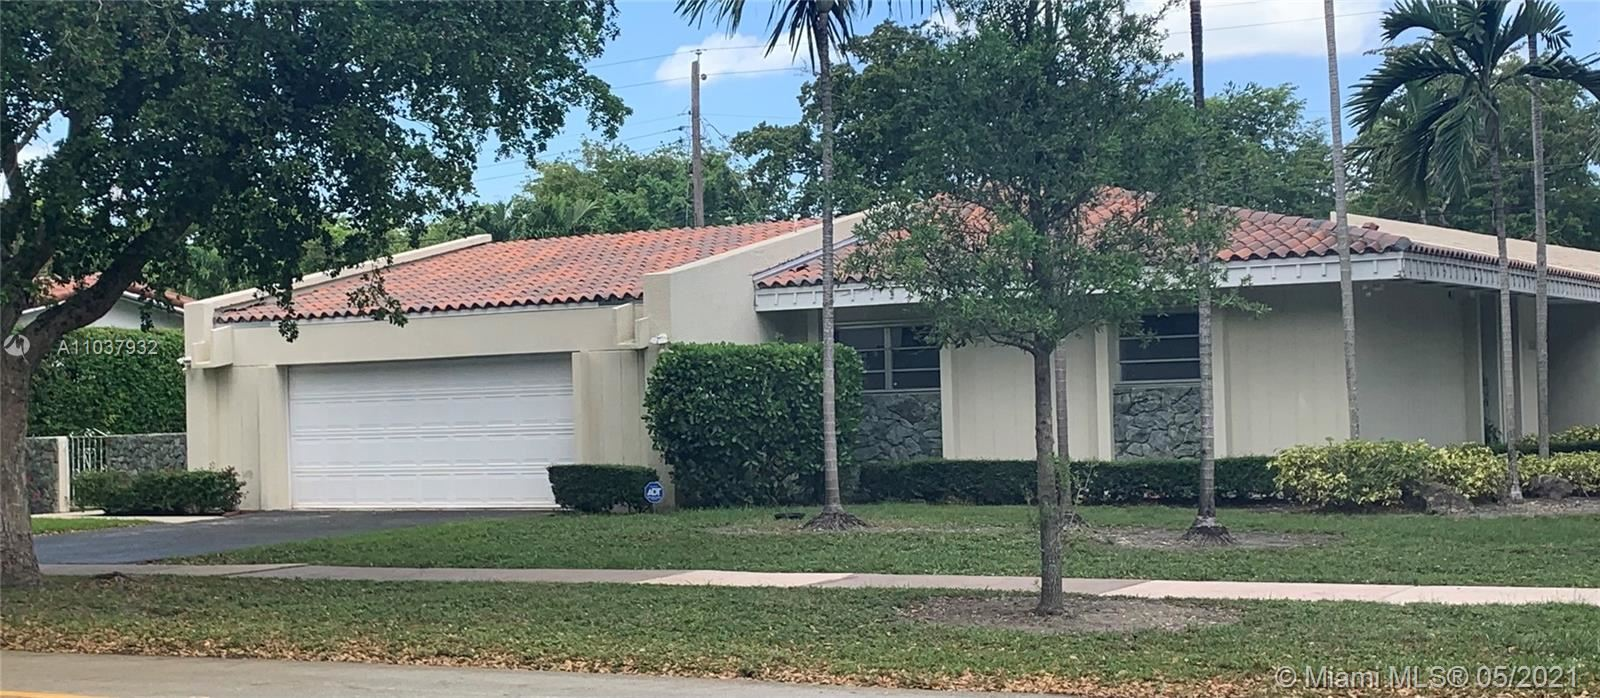 Photo of Coral Gables, FL 33146 (MLS # A11037932)